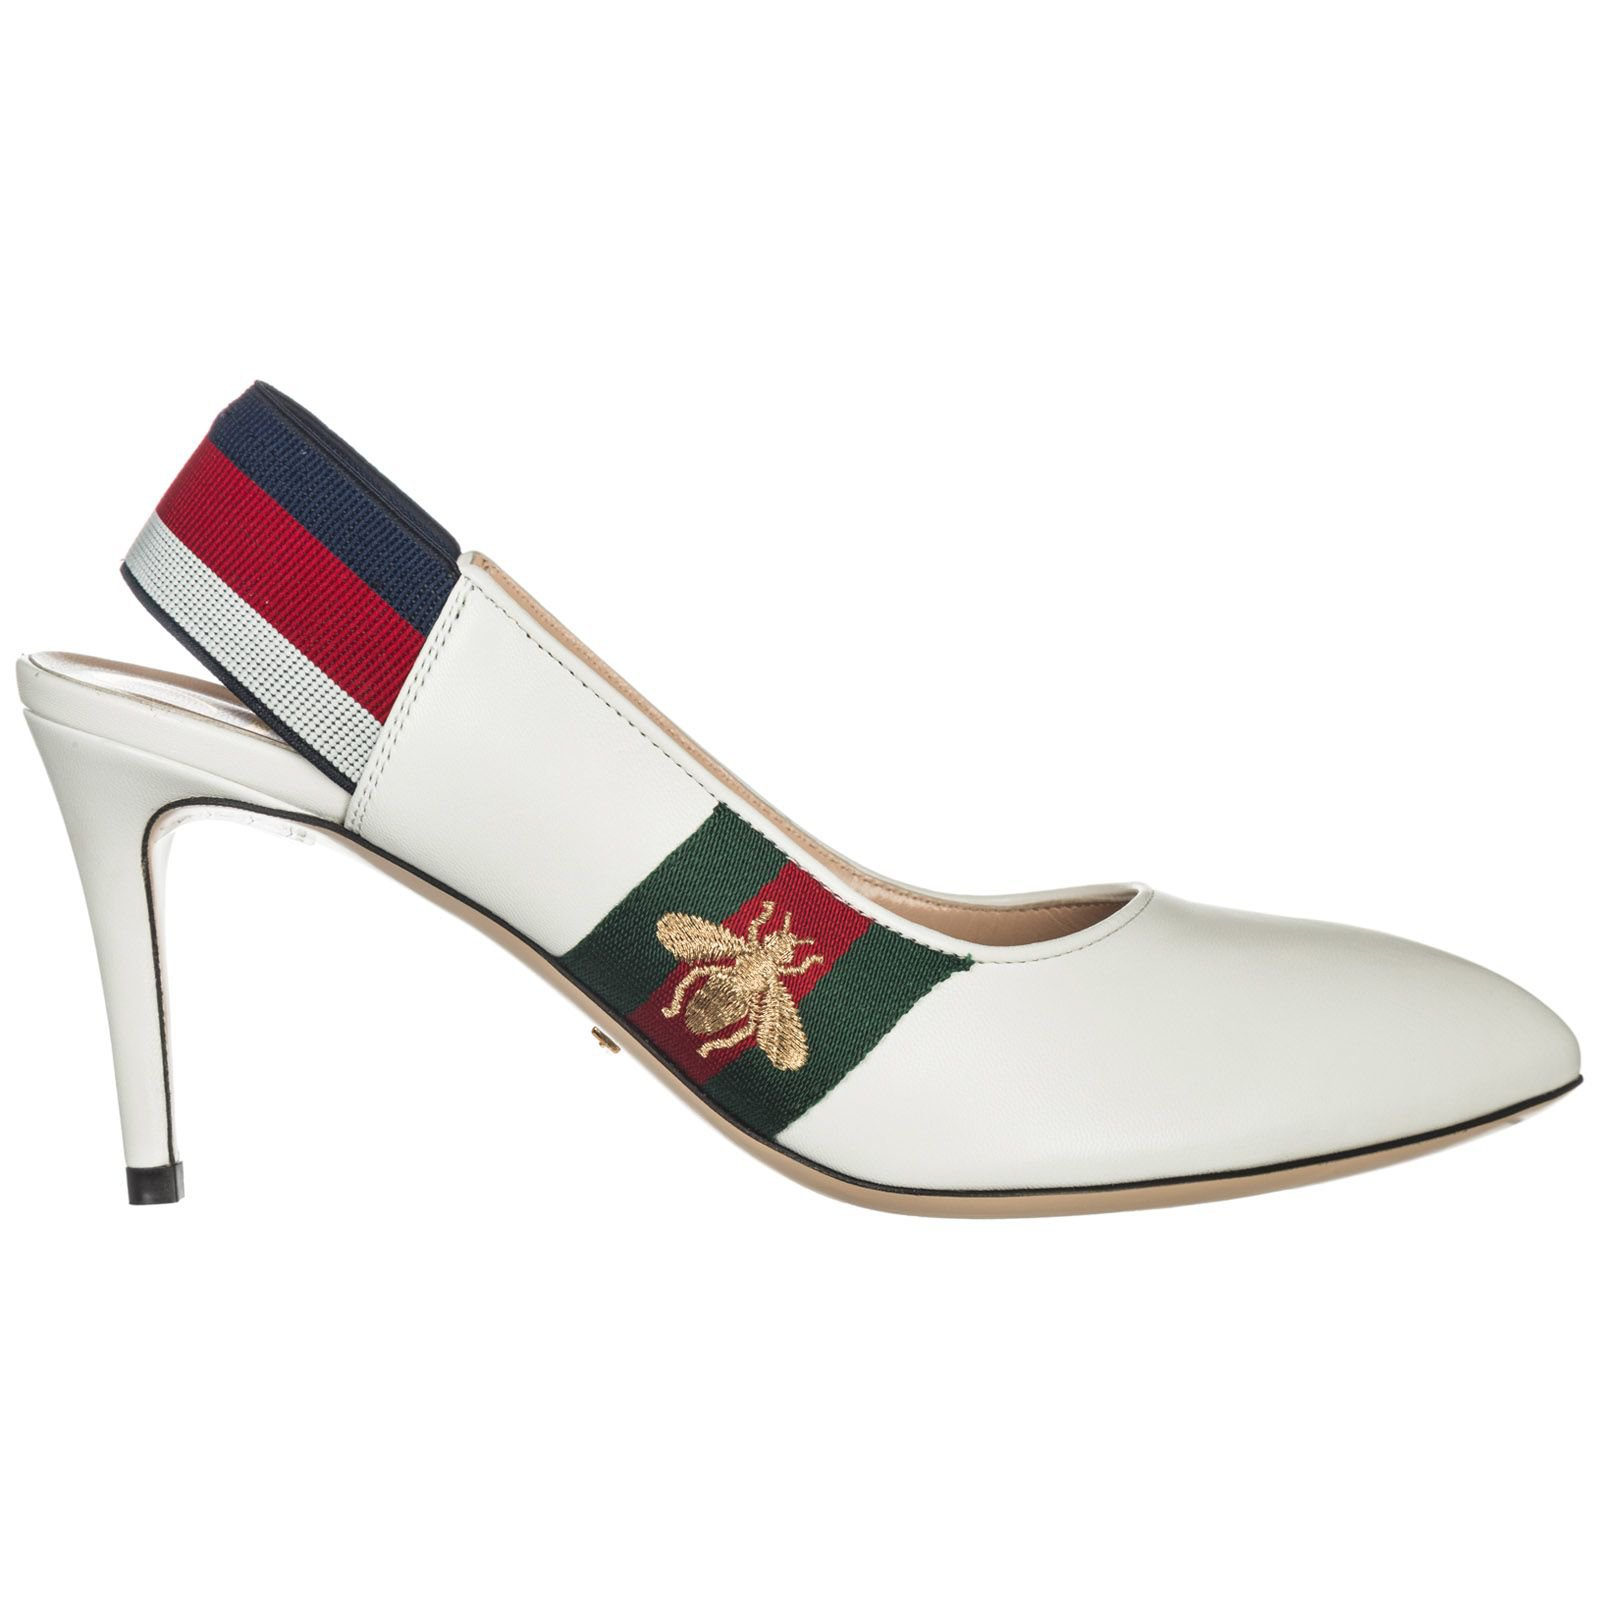 Gucci Leather Pumps Court Shoes High Heel